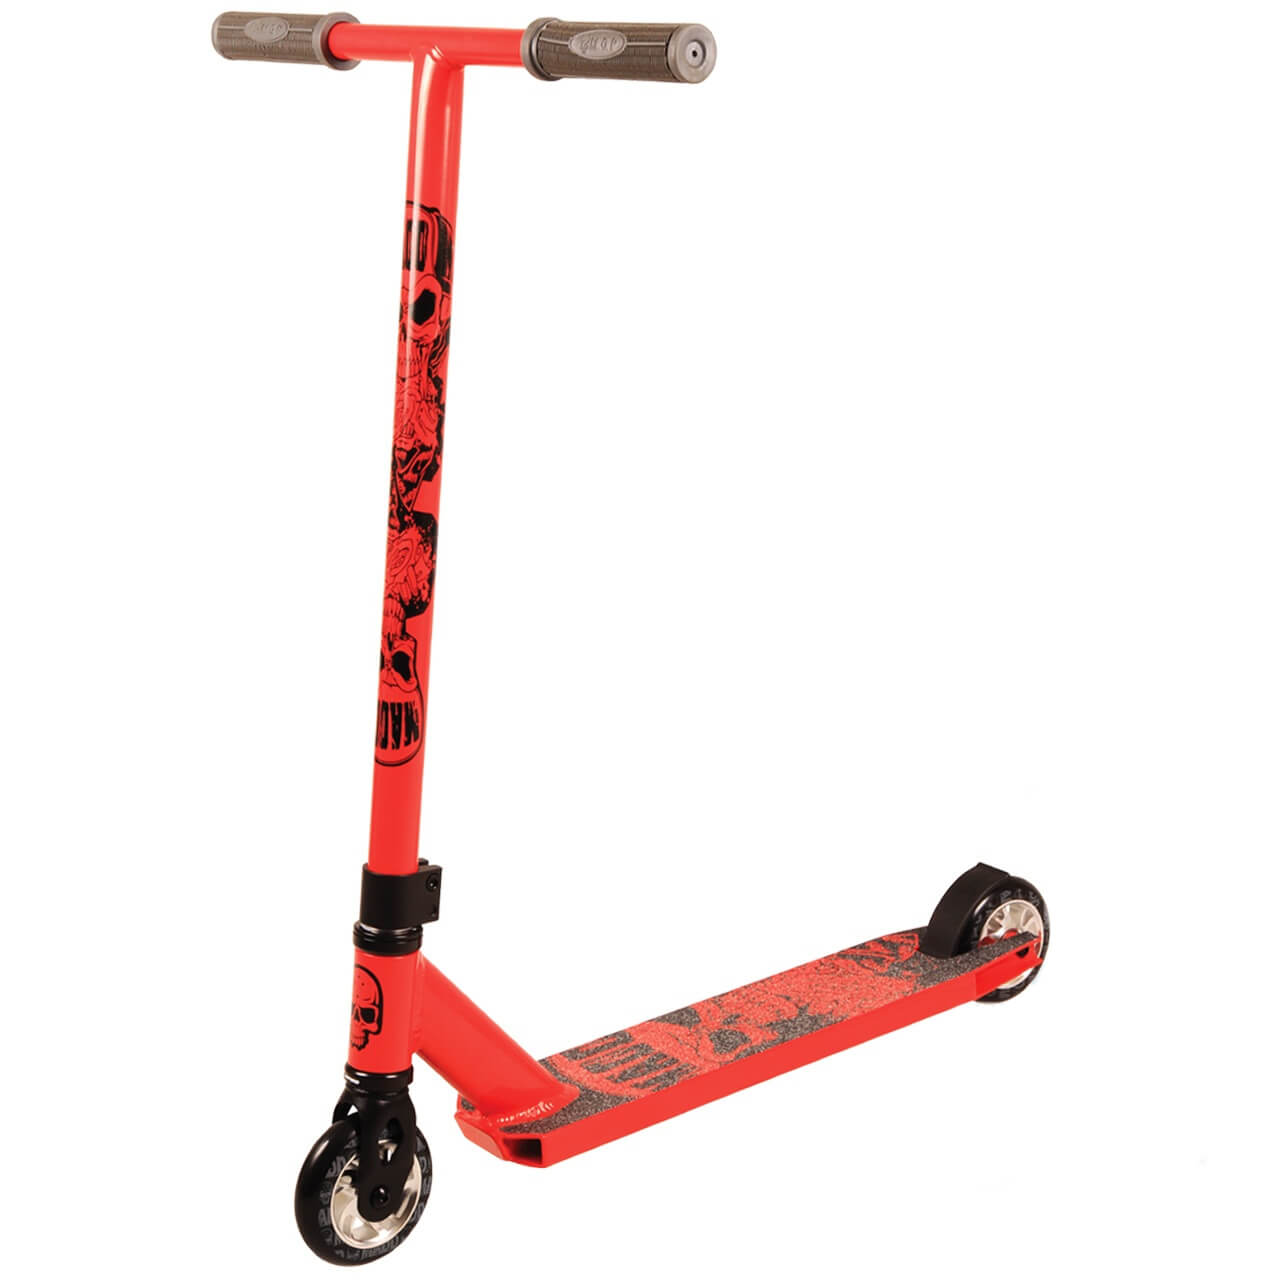 Madd Gear Extreme Red Kids Scooter